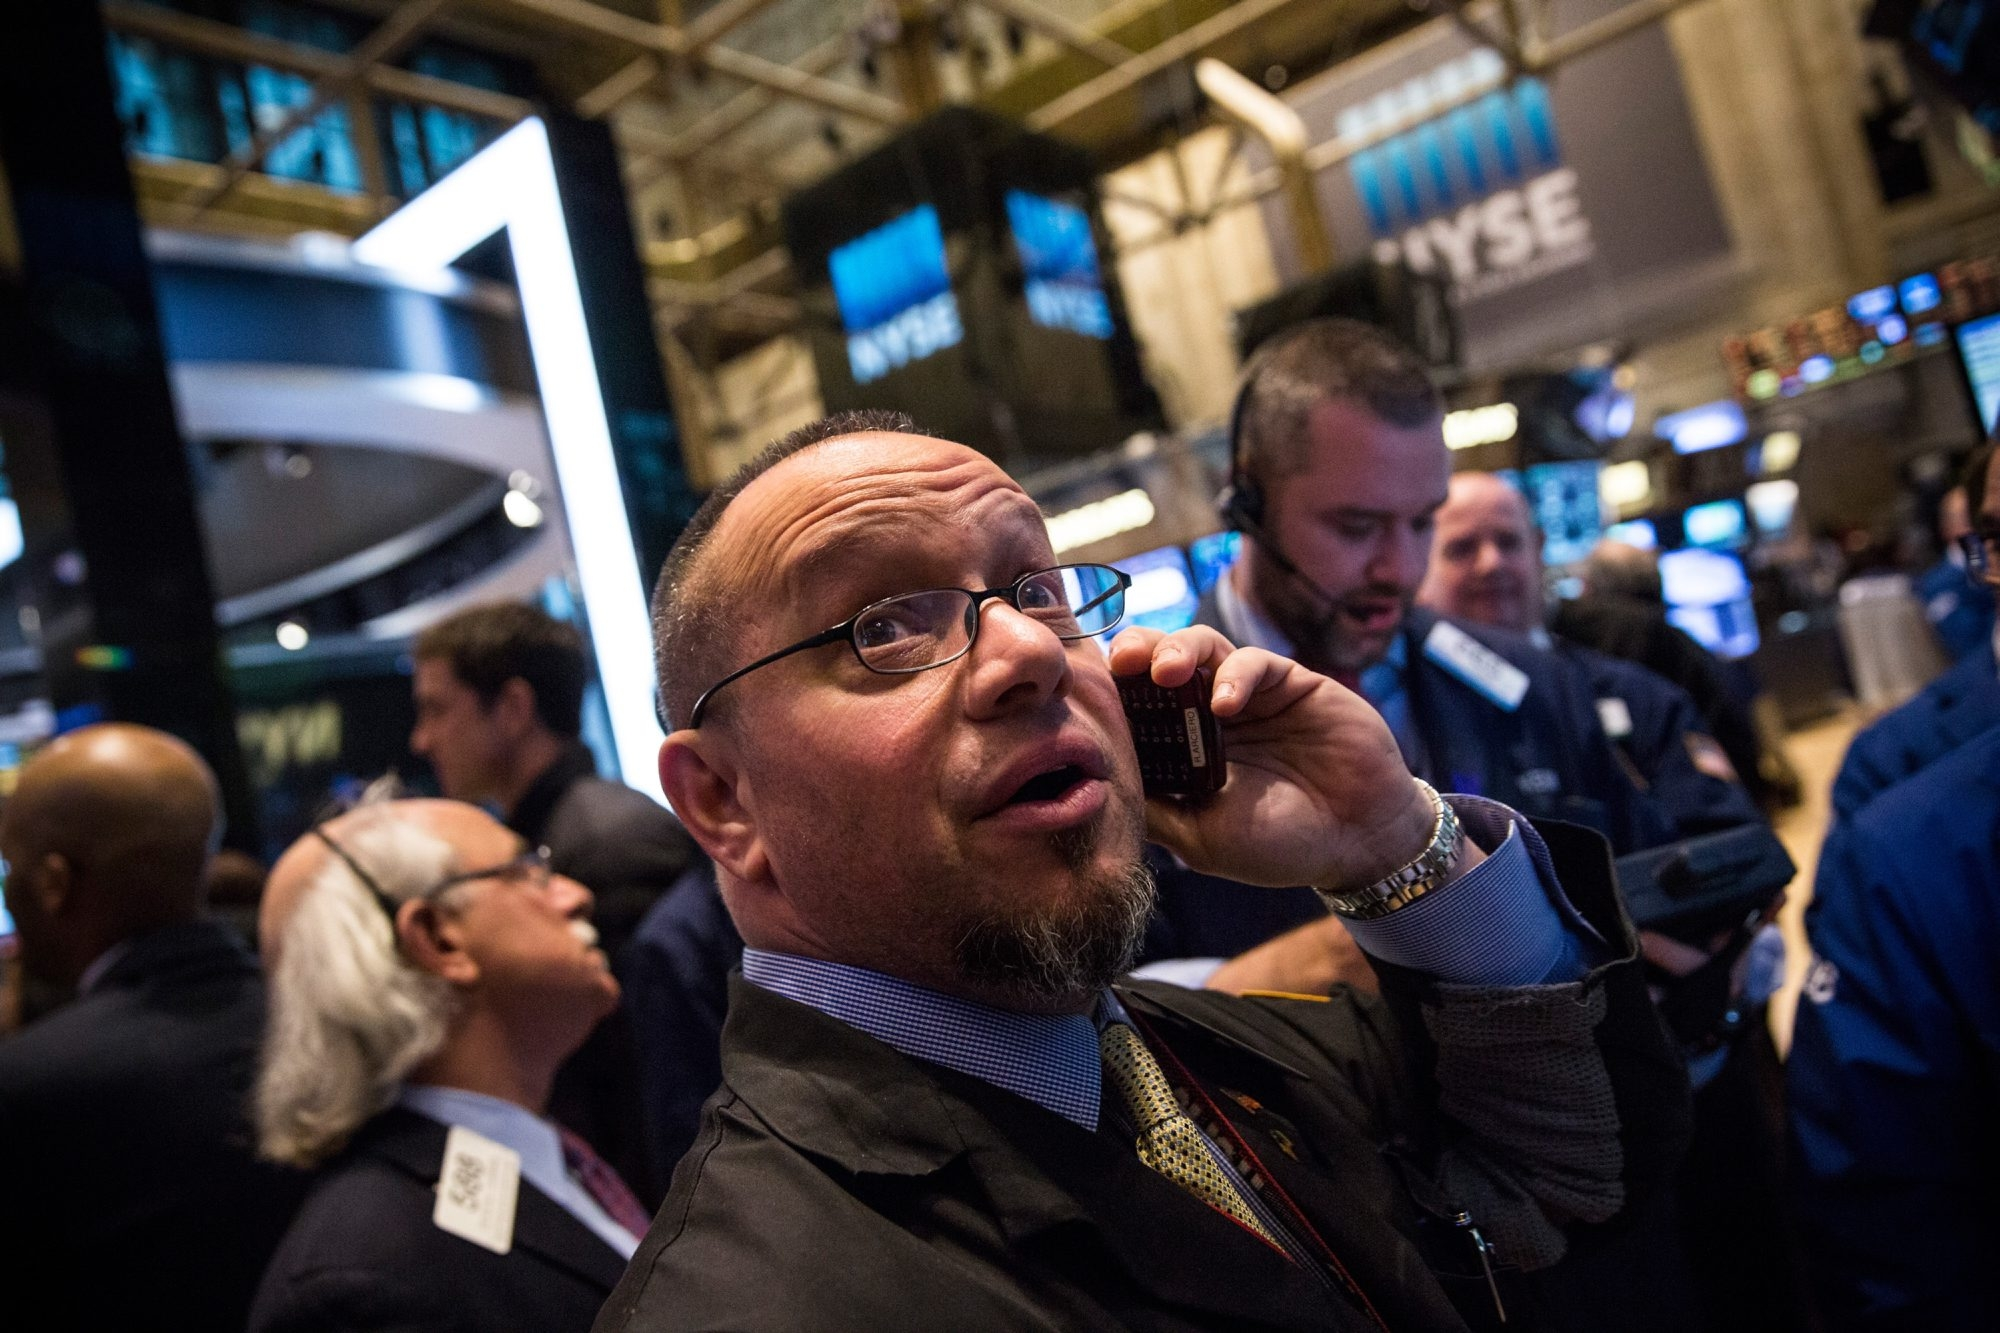 New York Stock Exchange traders found few encouraging figures Tuesday as the Dow Jones industrial average fell by 291.49 points, to 17,387.21, after losing almost 400 early in the day. The Nasdaq 100's 2.6 percent drop was its worst since April, and the Standard & Poor's 500 slipped to 2,029.55, below its previous 50-day average.